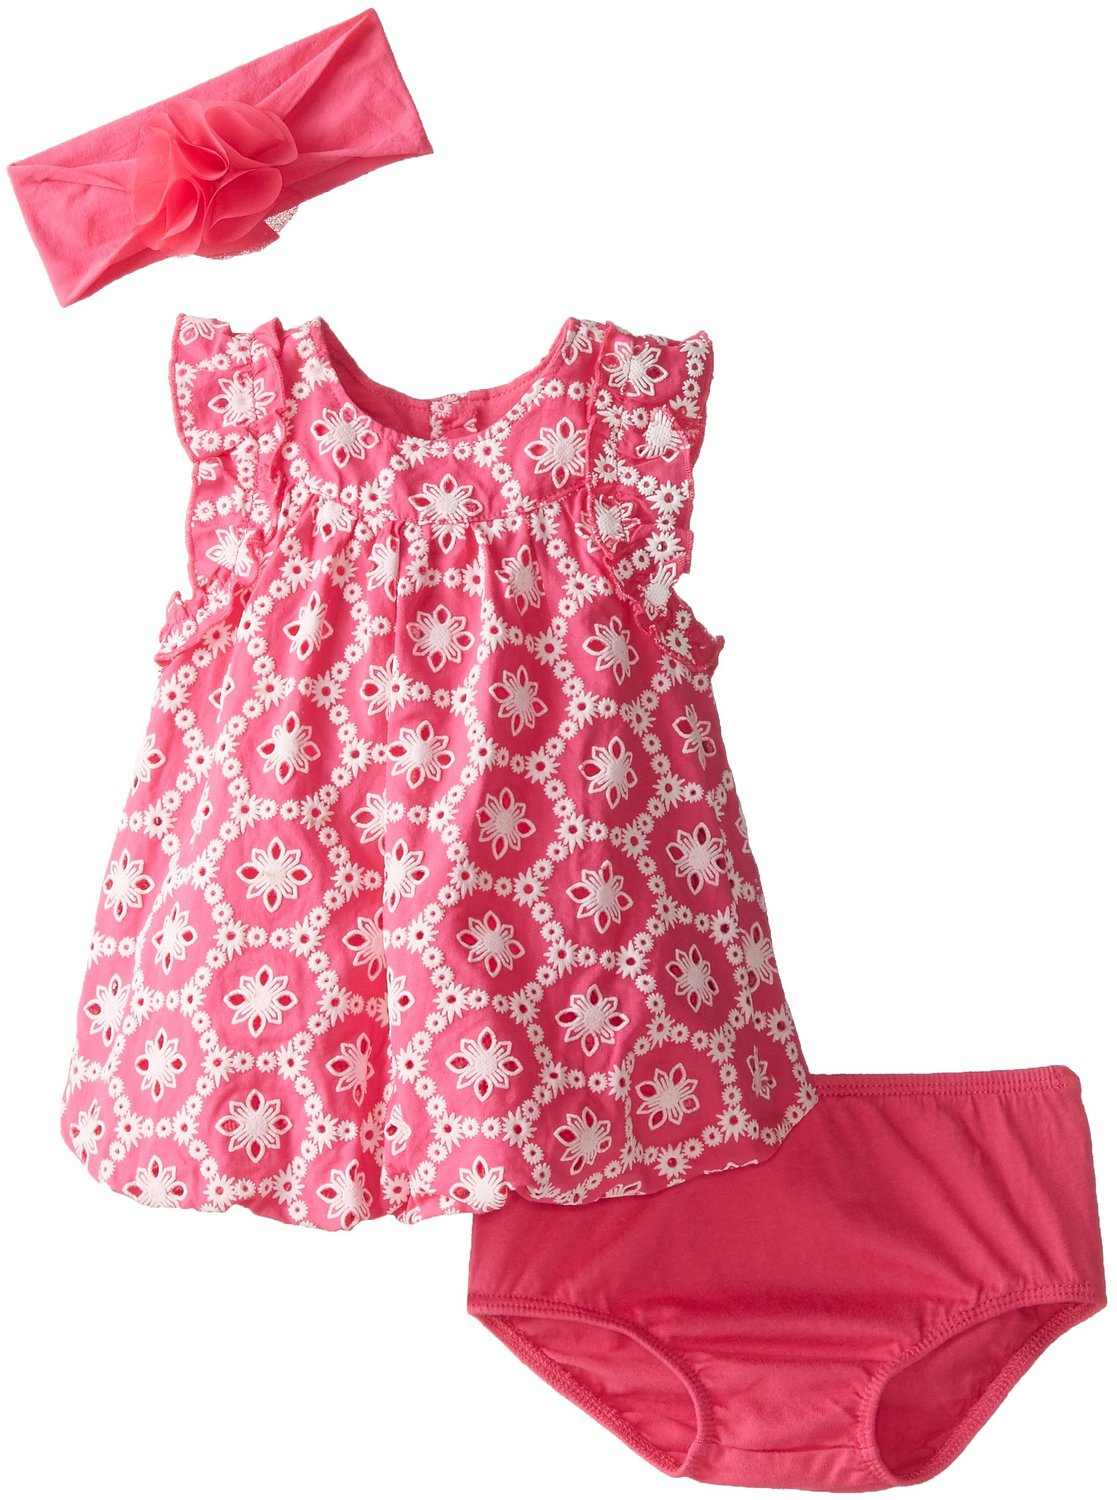 Ackermans Baby Girl Clothes